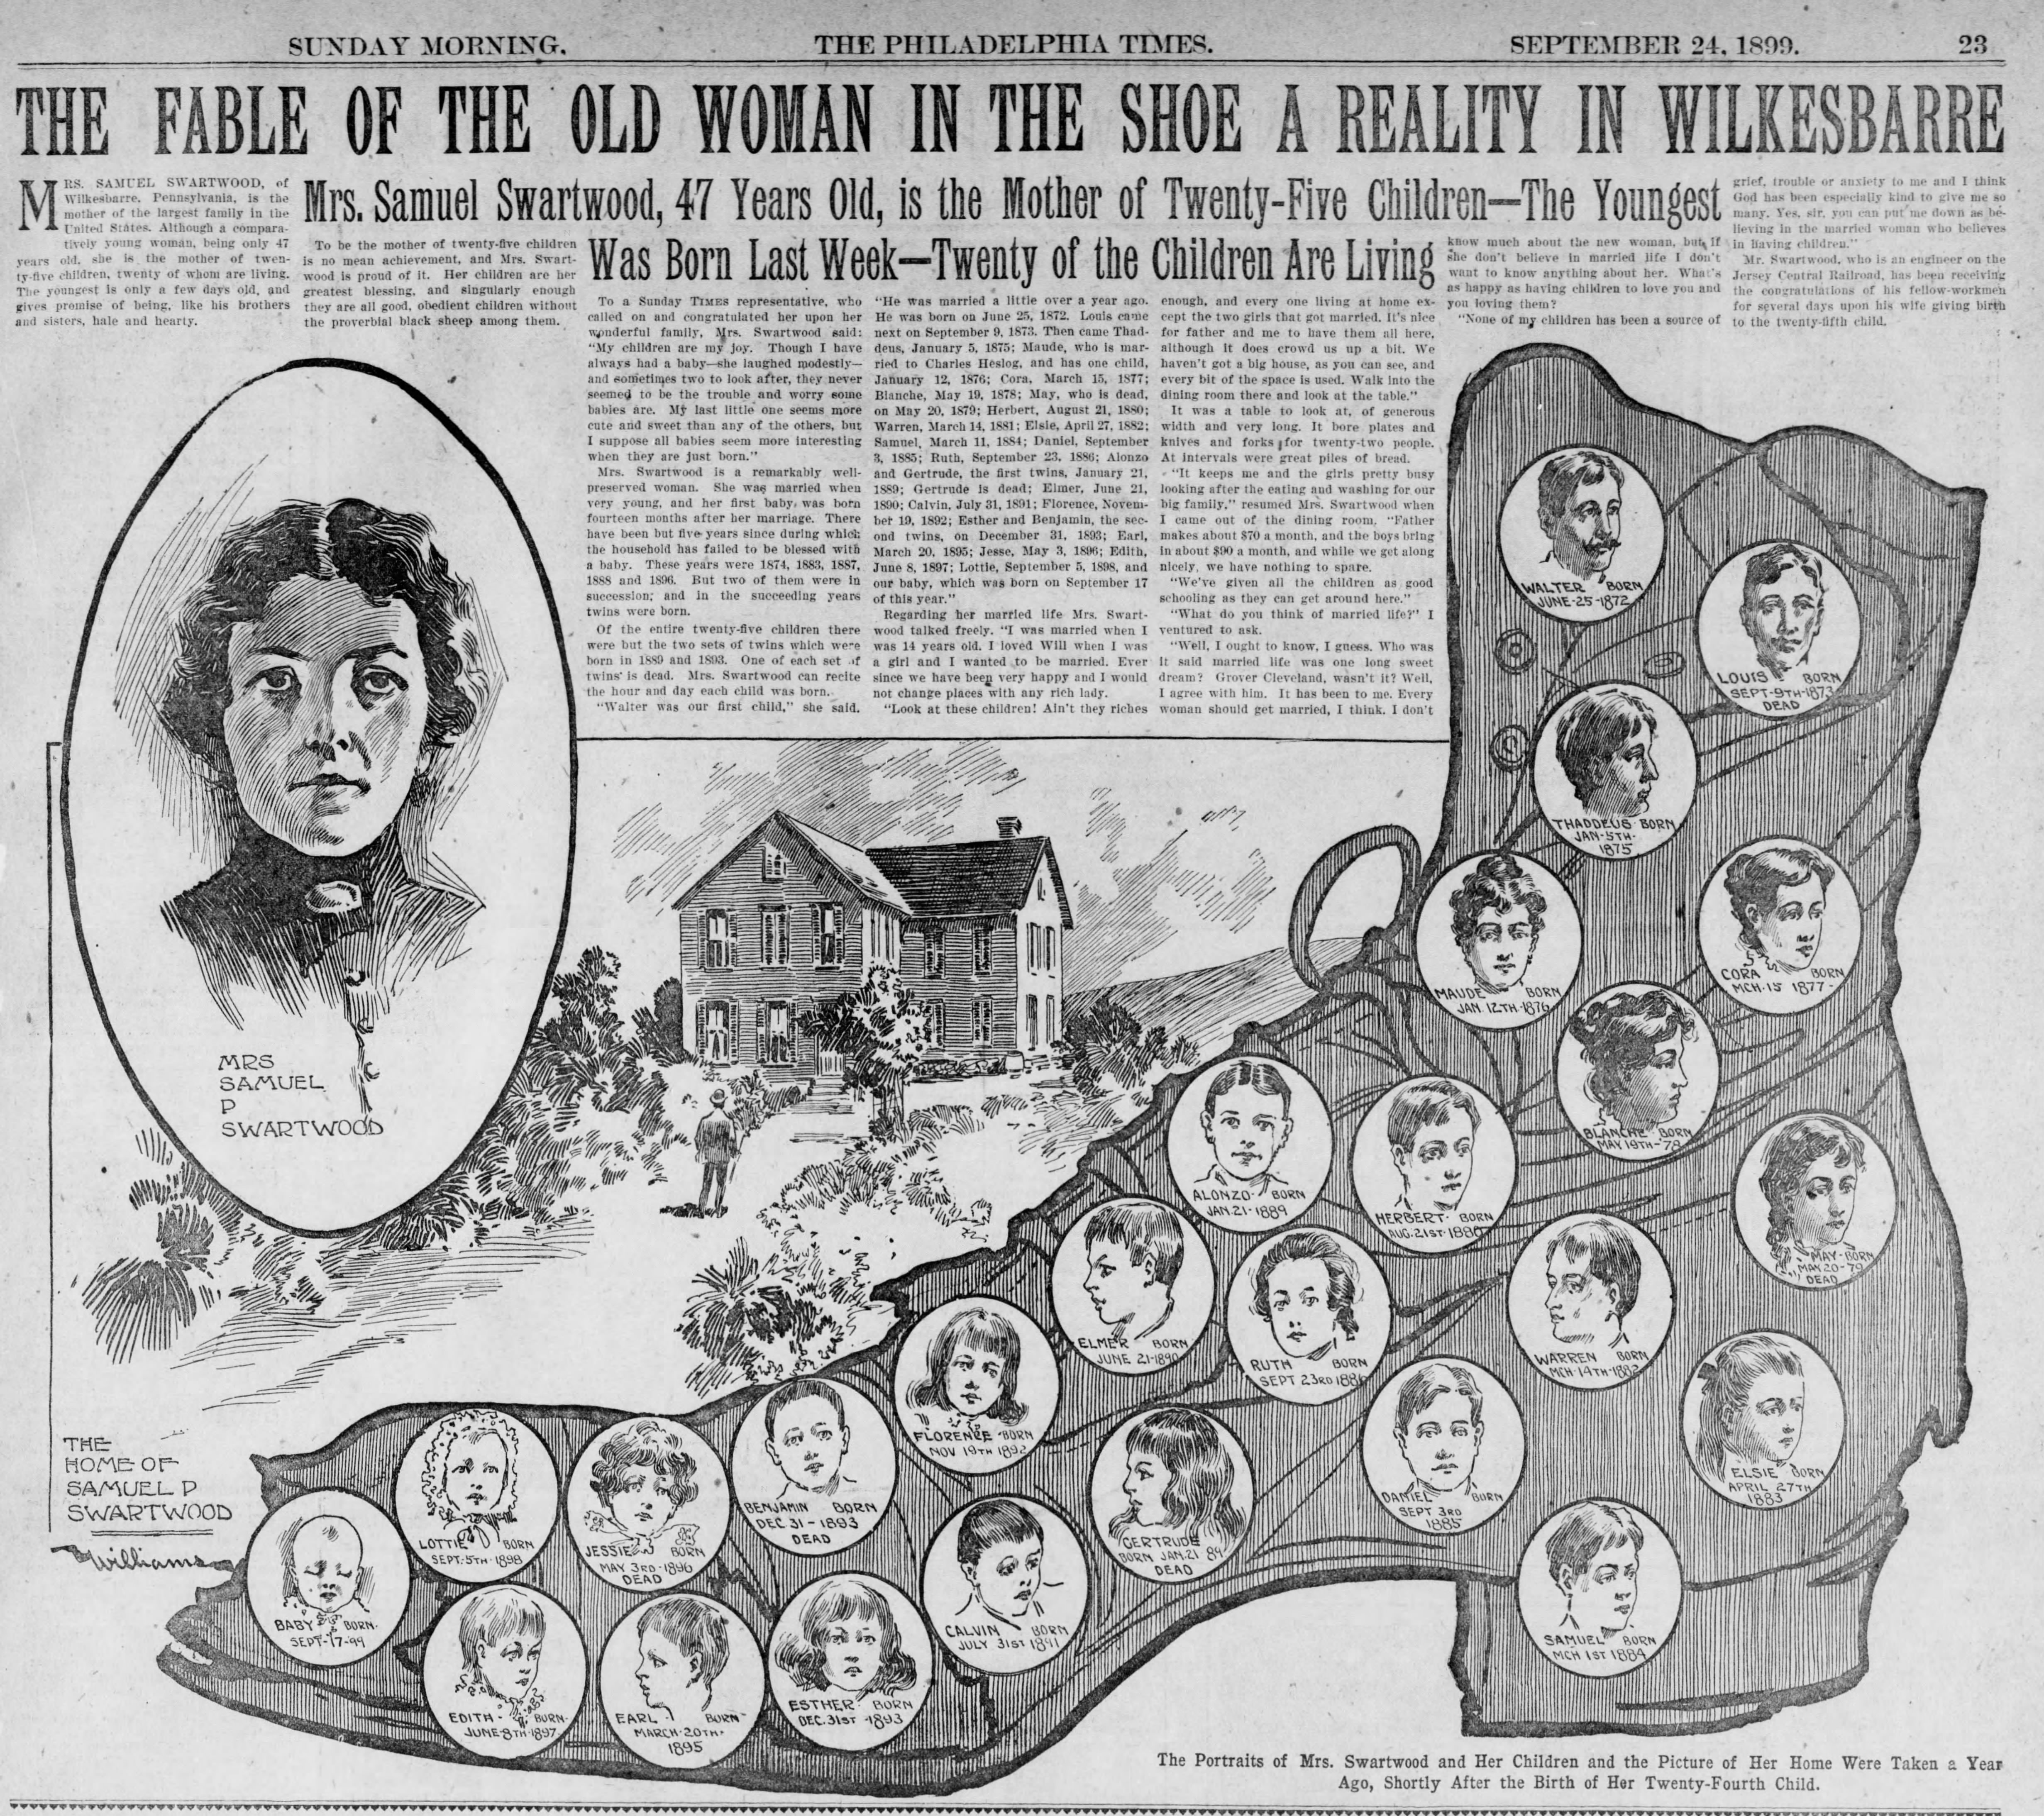 The Fable of the Old Woman in the Shoe a Reality in Wilkesbarre